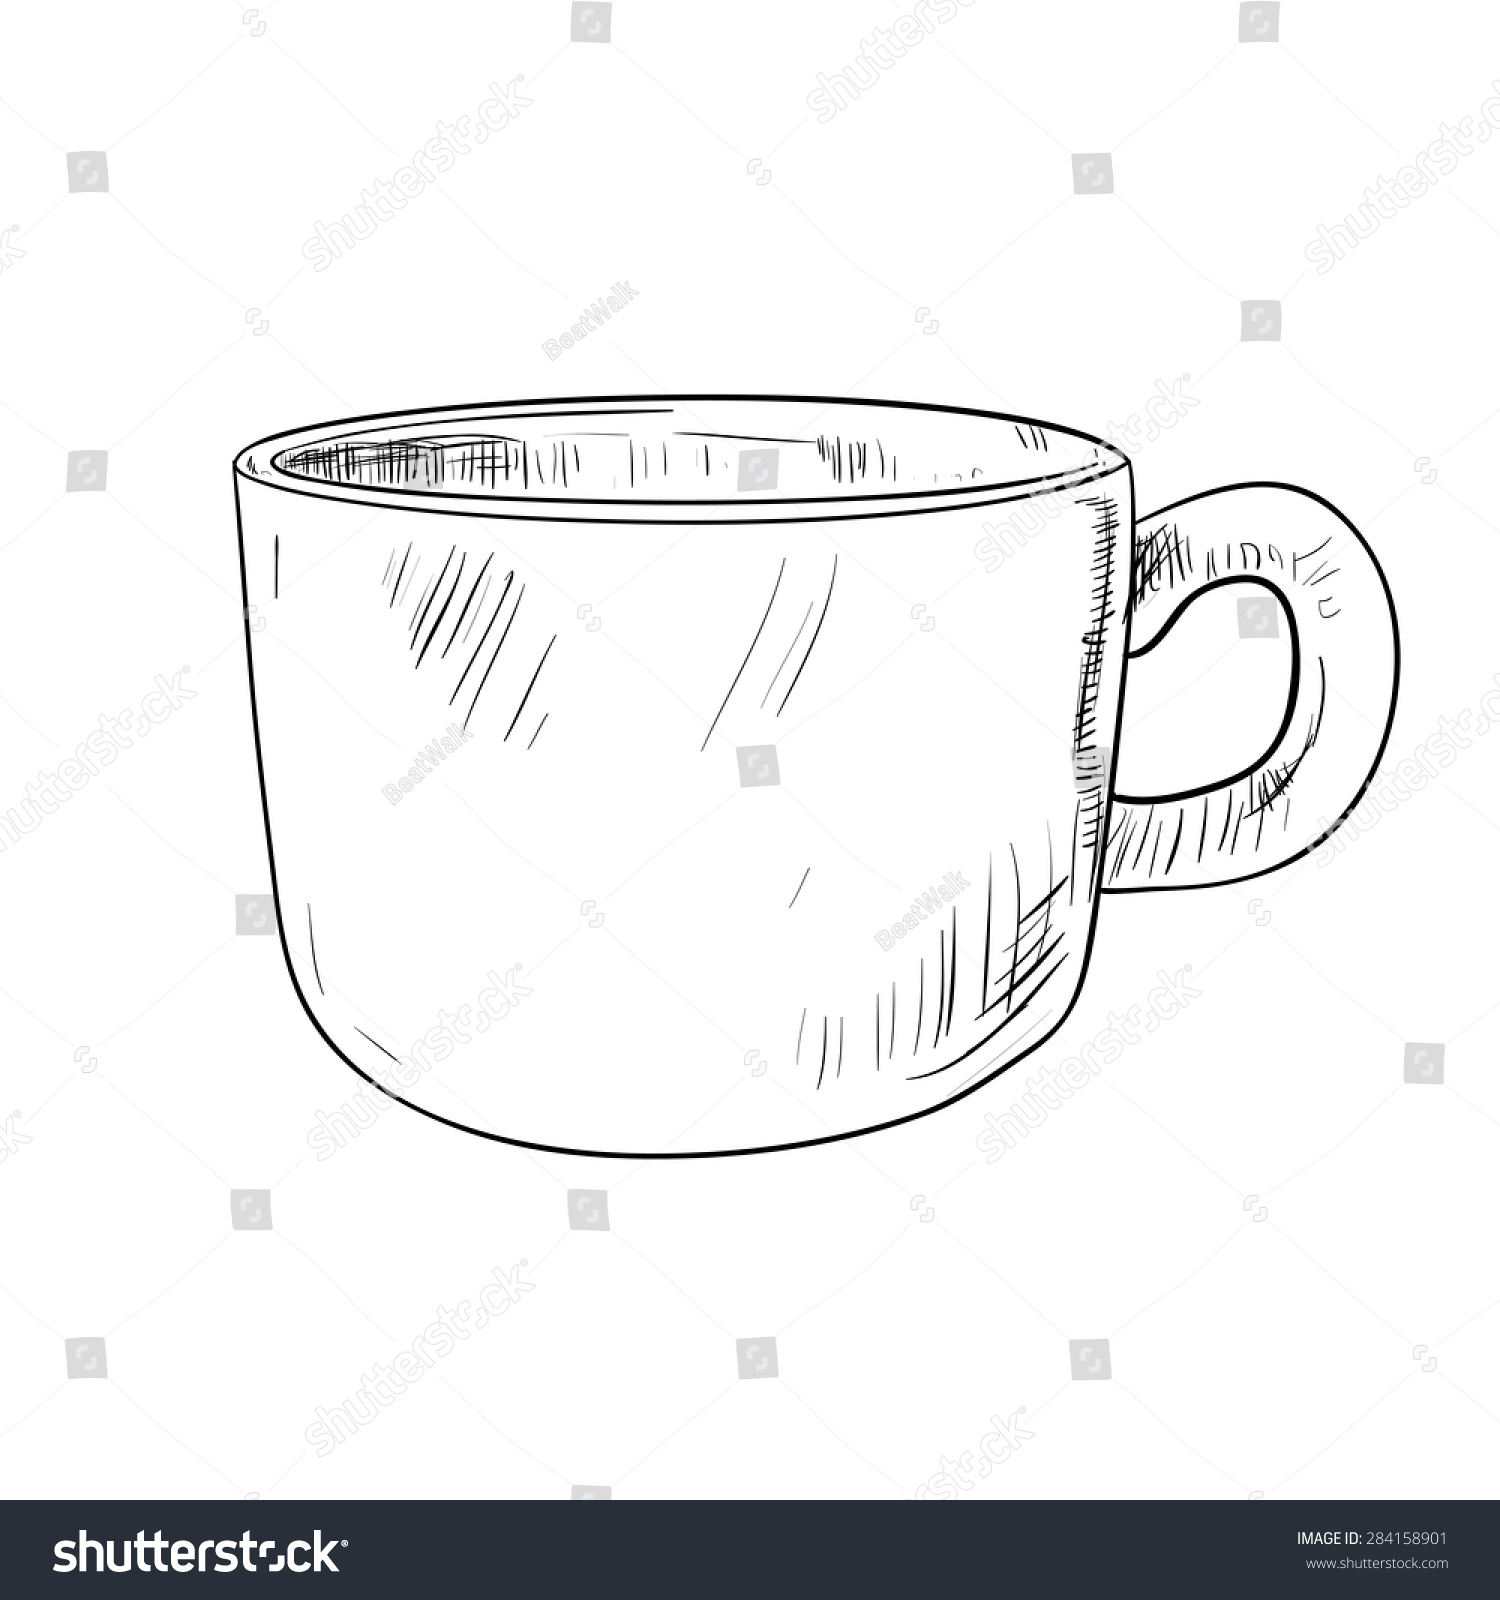 Vector Sketch Cup Hand Draw Illustration Stock Vector 284158901 ...